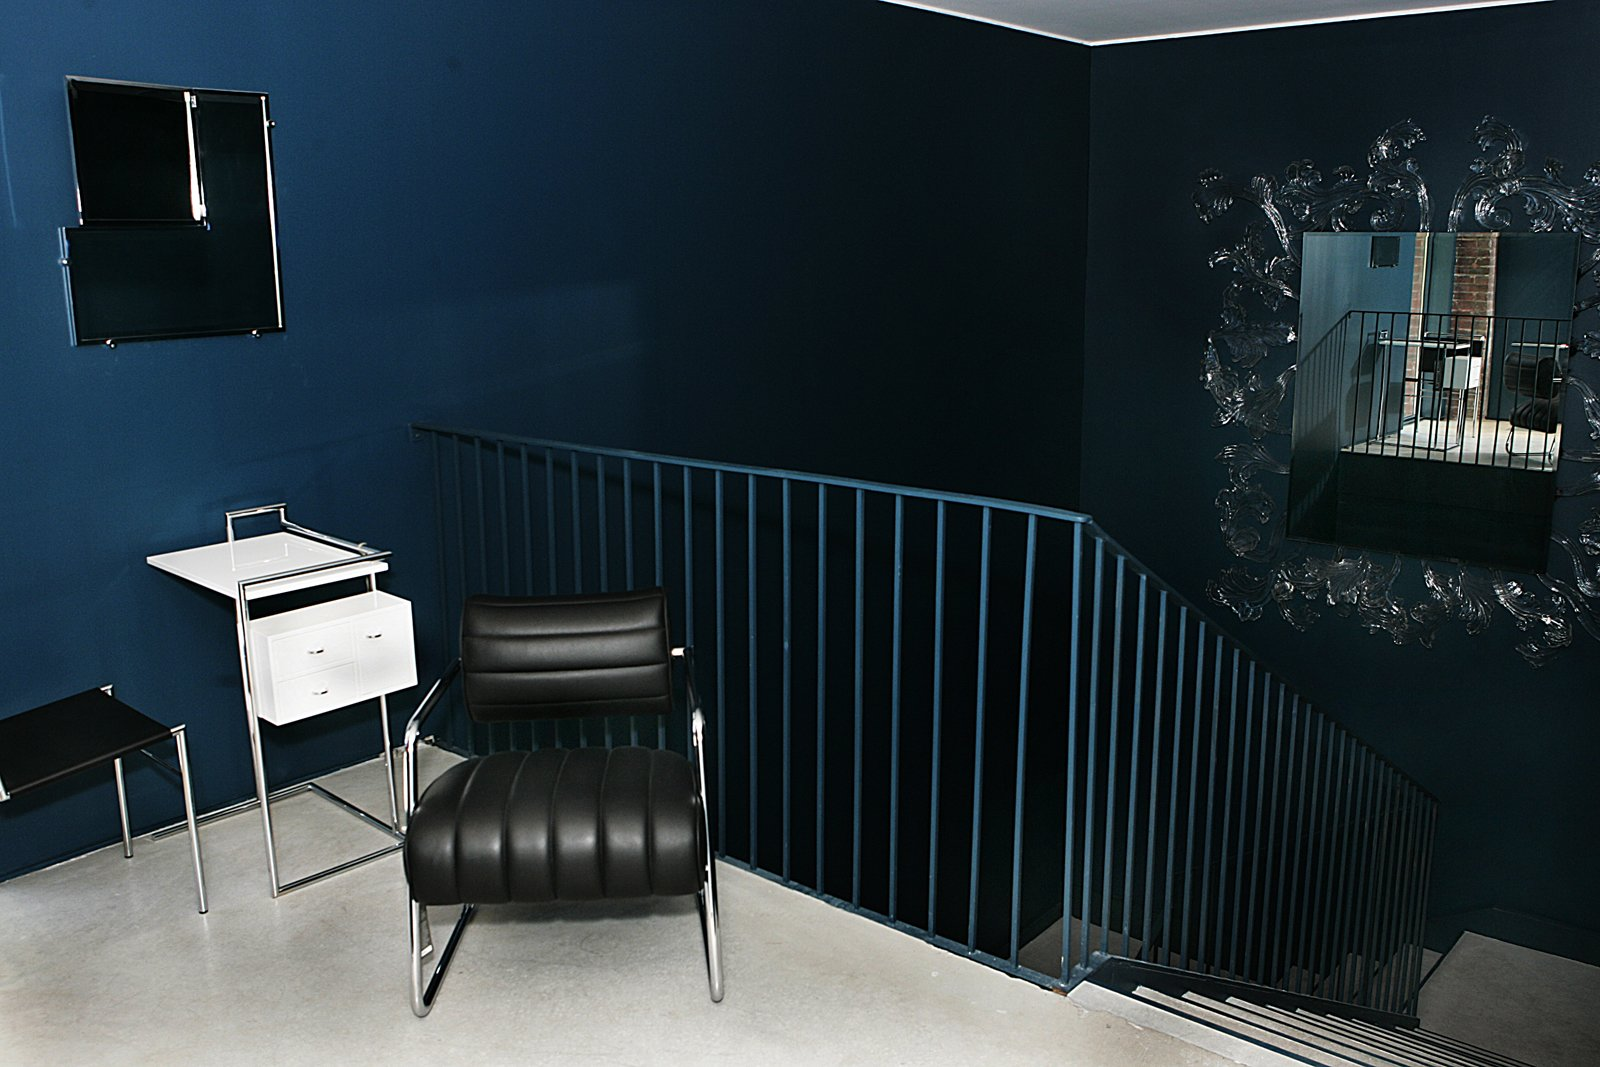 Staircase, Metal Railing, and Concrete Tread Eileen Gray's 1935 Bonaparte armchair and Petite Coiffeuse occasional table from 1929 form a stair landing tableau.  Photo 7 of 9 in These 9 Spaces Show How to Rock a Monochromatic Color Scheme from Avenue Road